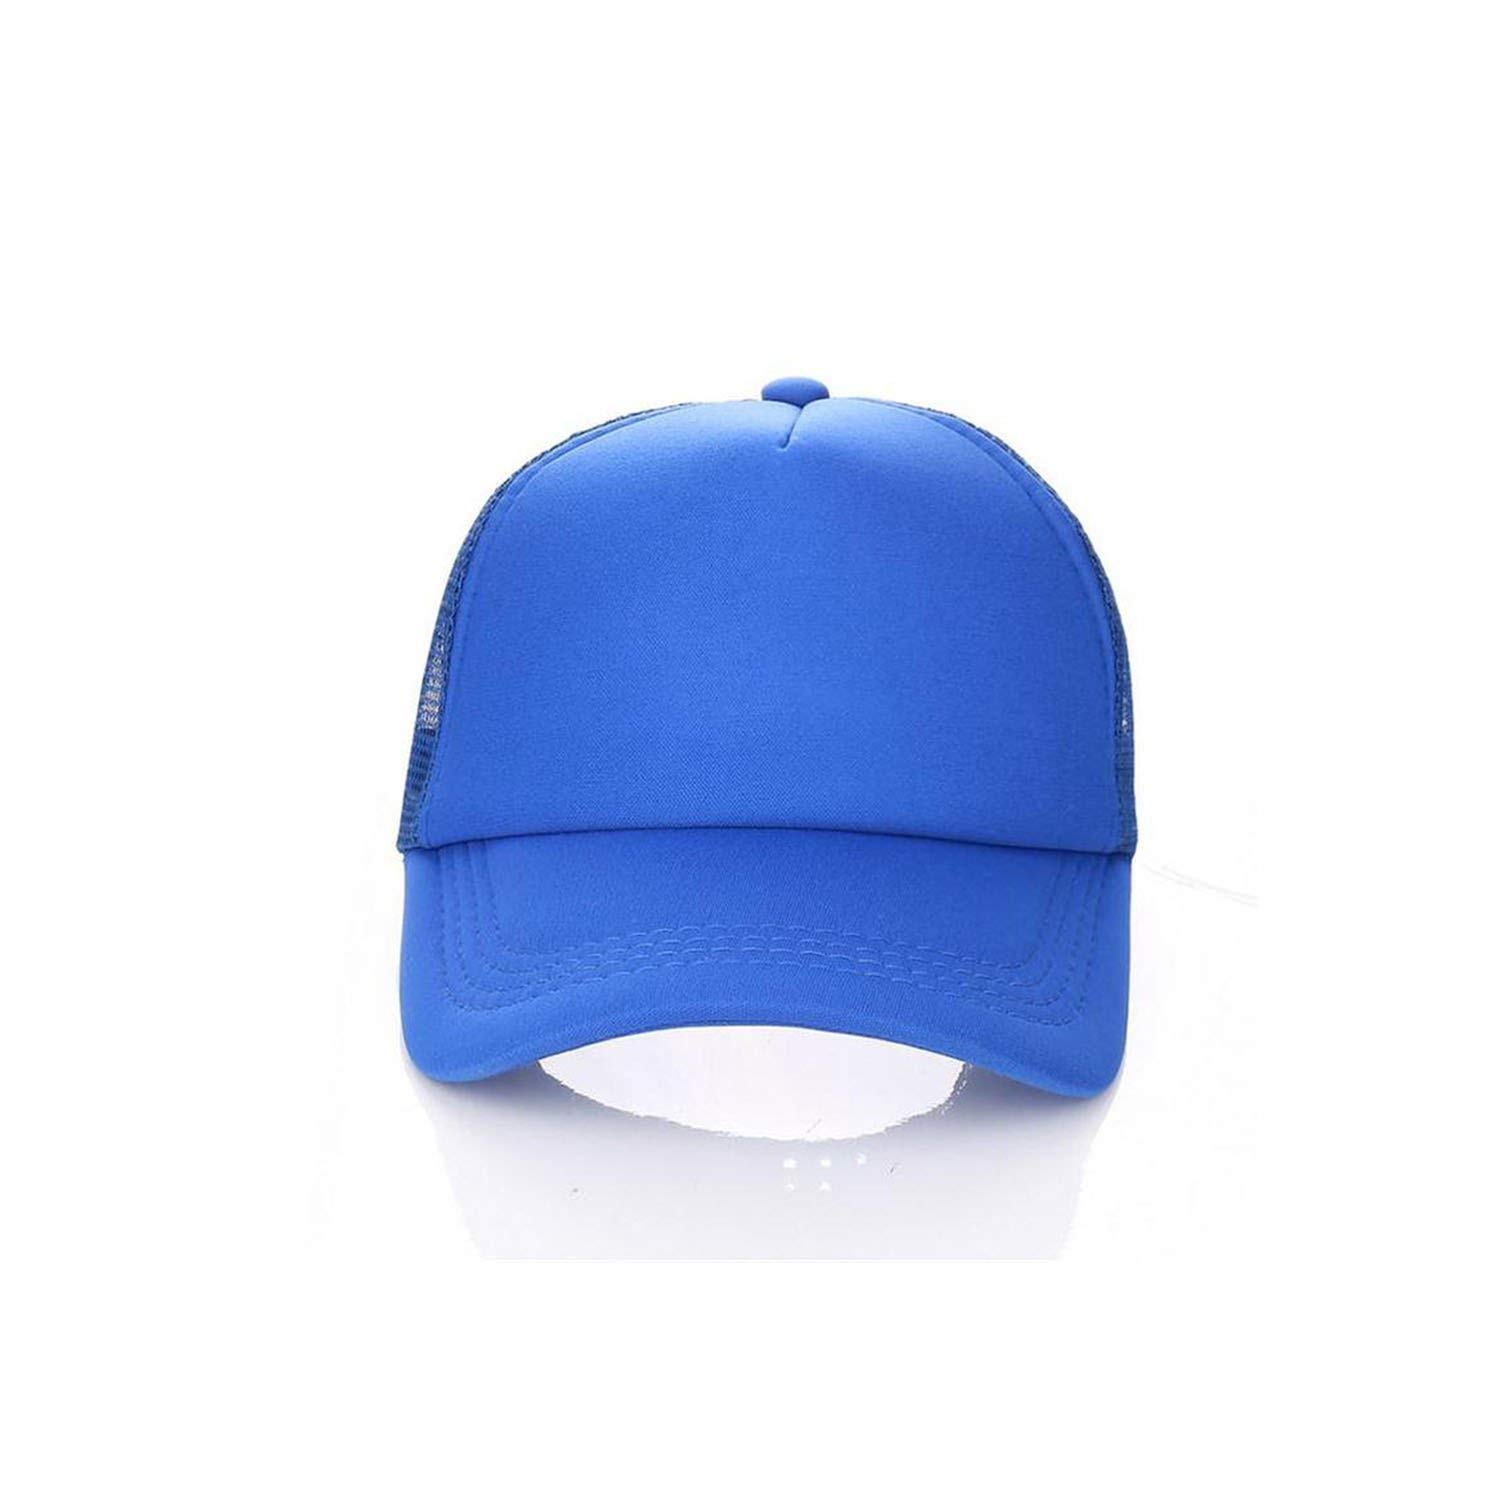 54-58cm Custom 100/% Polyester Baseball Cap Blank Mesh Adjustable Hat Adult Children Kids,Blue,Adult